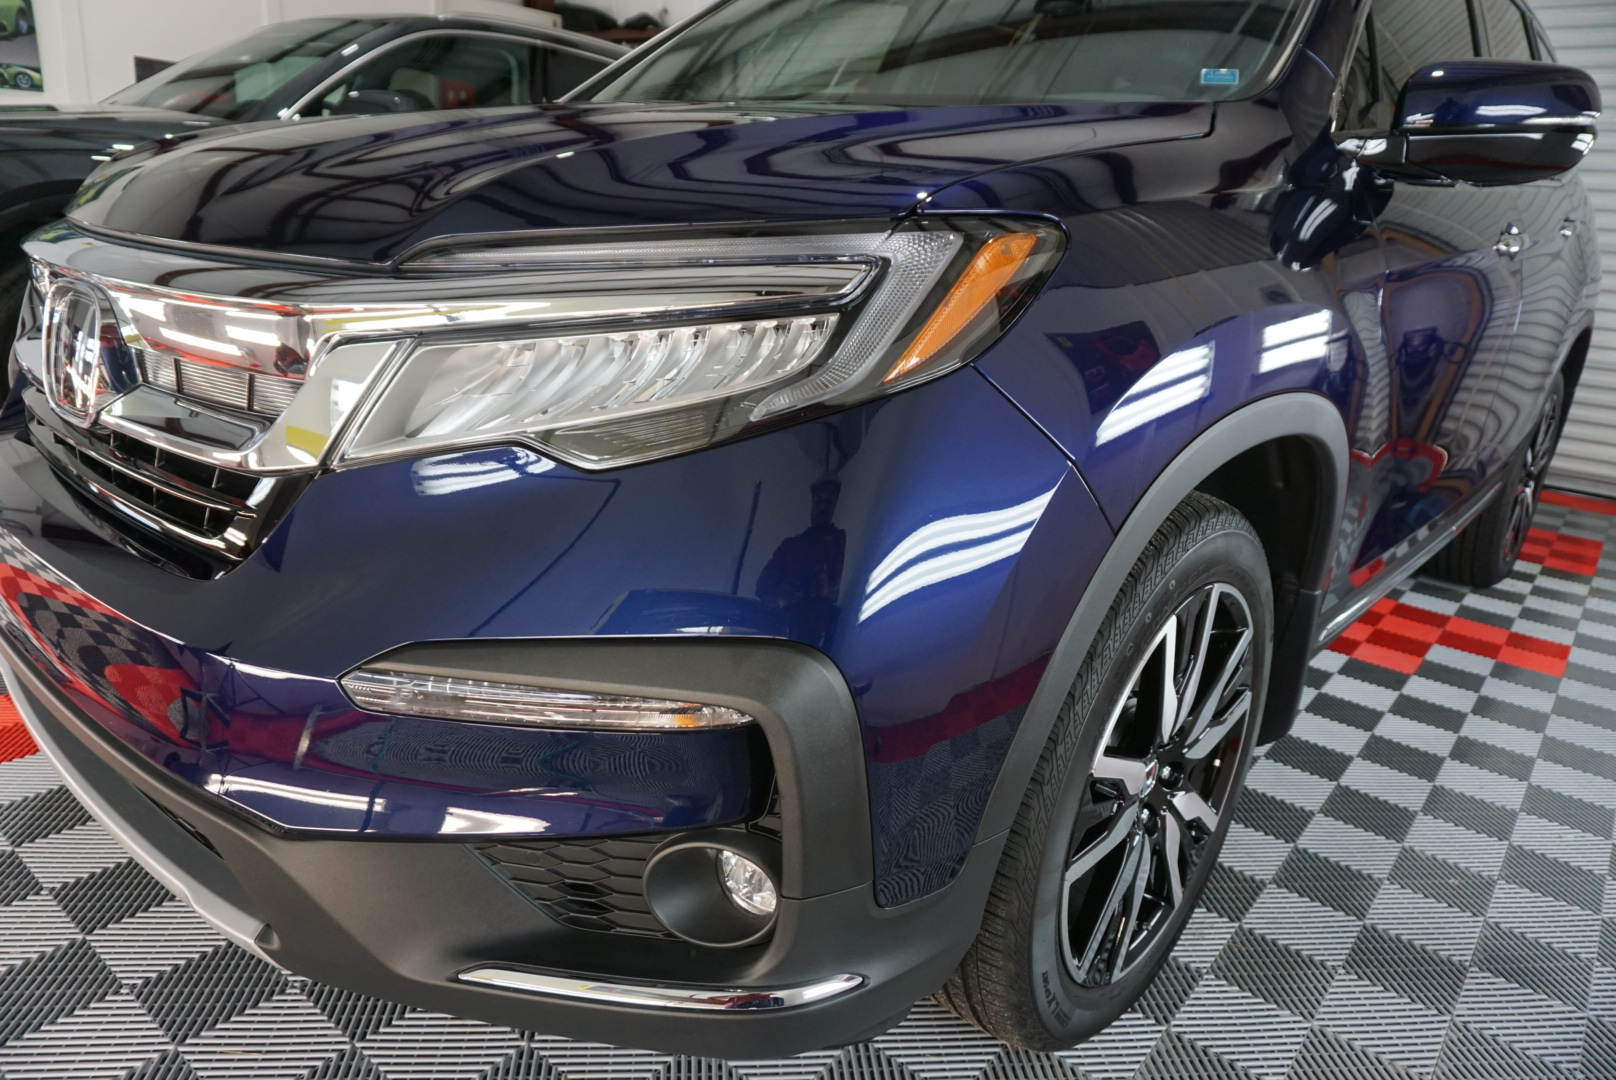 New Car Preparation of a 2019 Honda Pilot